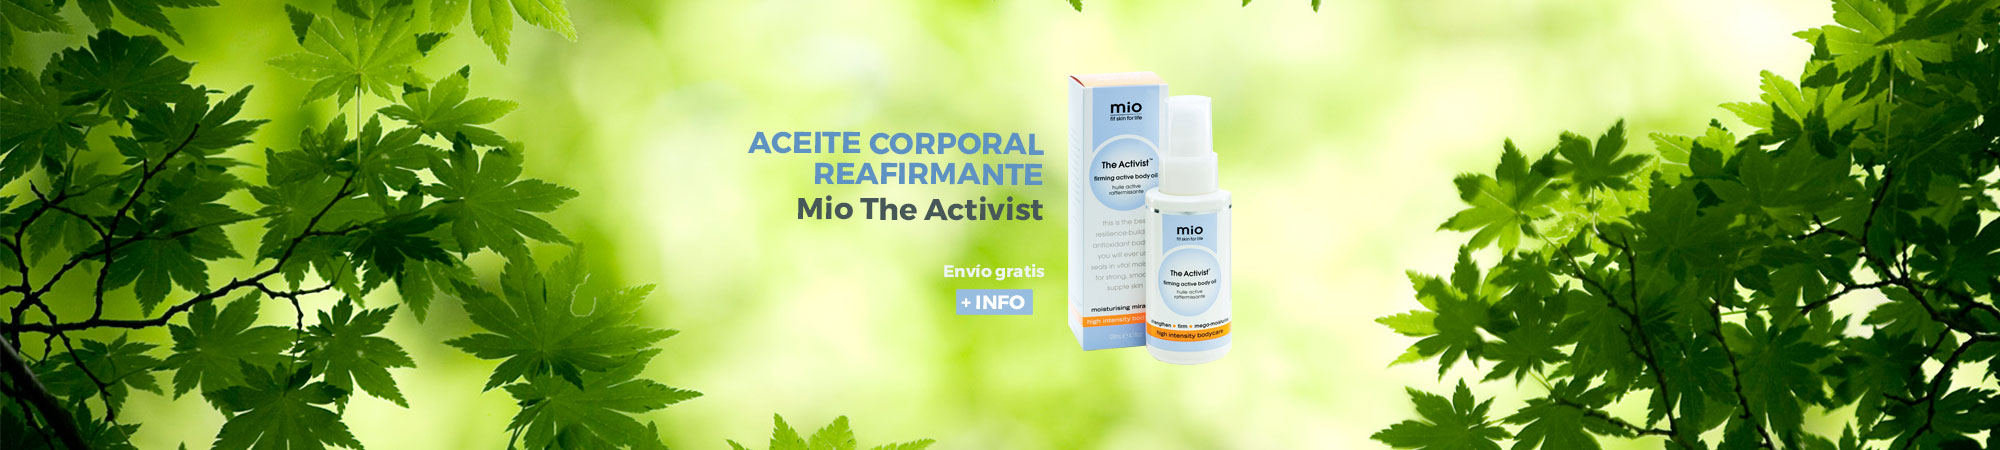 Mio The activist reafirmante corporal